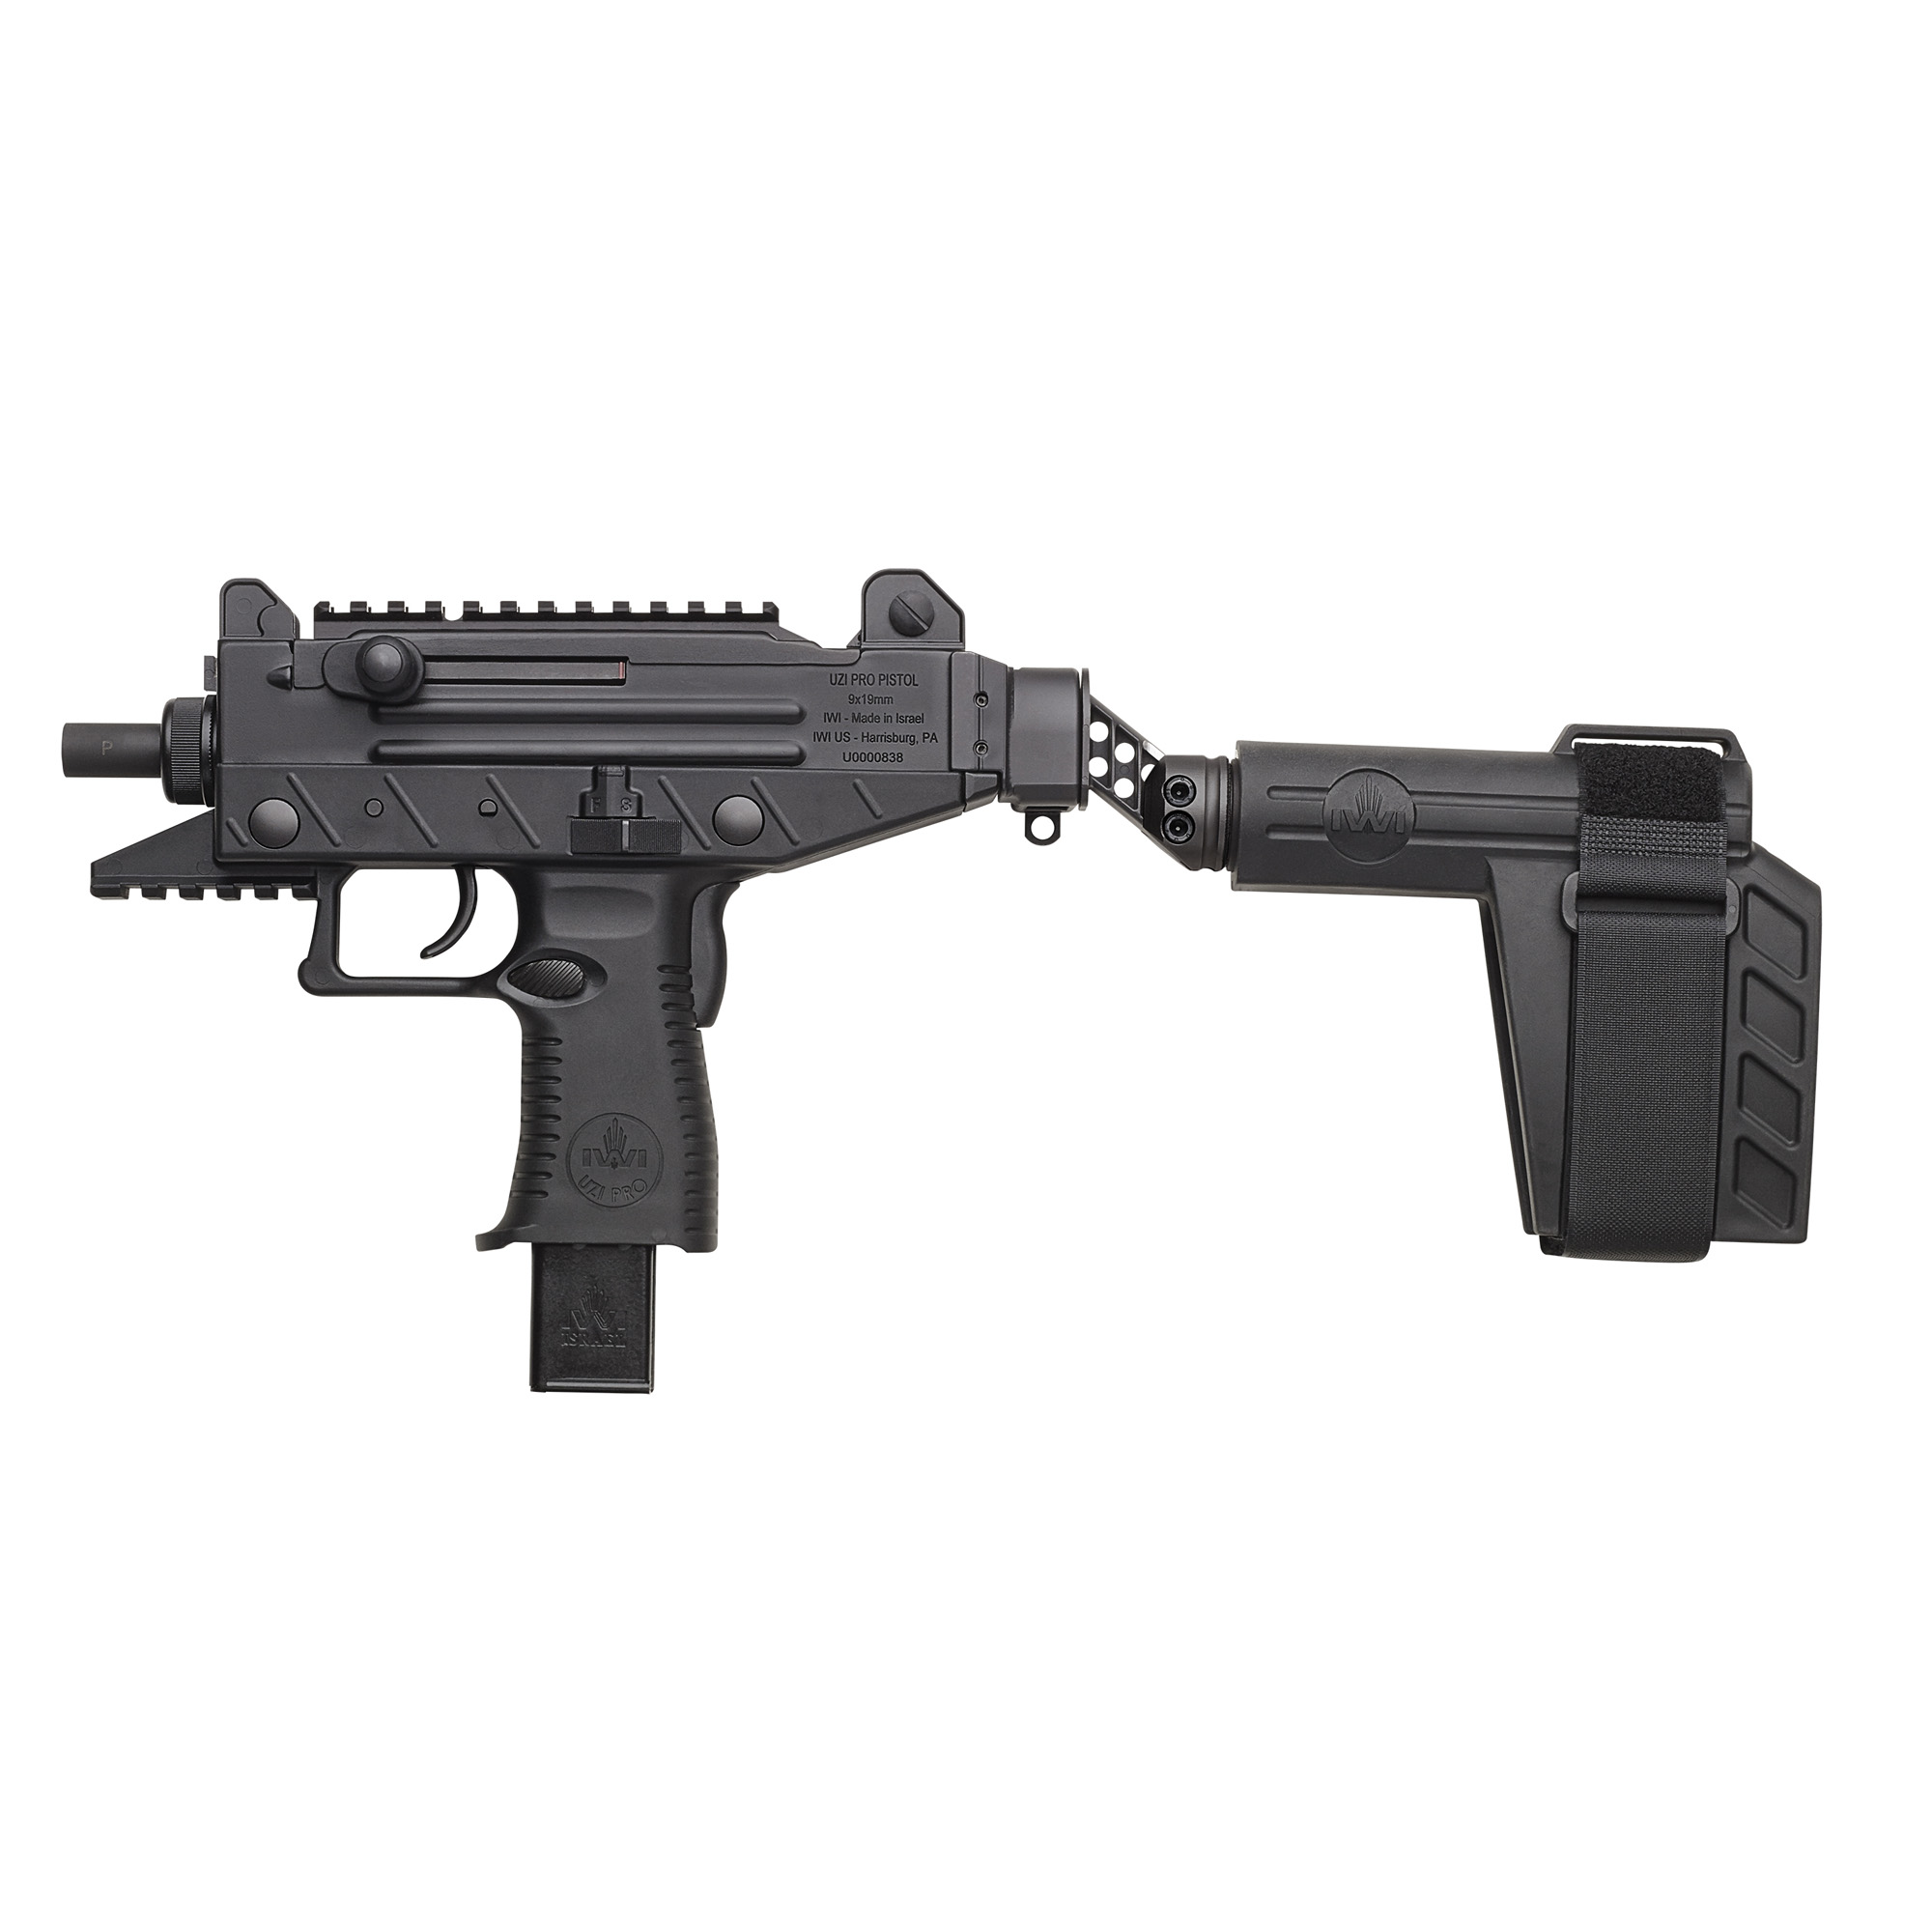 """IWI US"""" Inc.'s Pistol Stabilizing Brace with hinge mount will fit most Uzi Clones. The pistol brace has a side folding adapter for compact transport and storage. The brace is used by strapping it to the forearm. It is made of polymer material with an adjustable nylon stabilizing strap with a Velcro closure."""